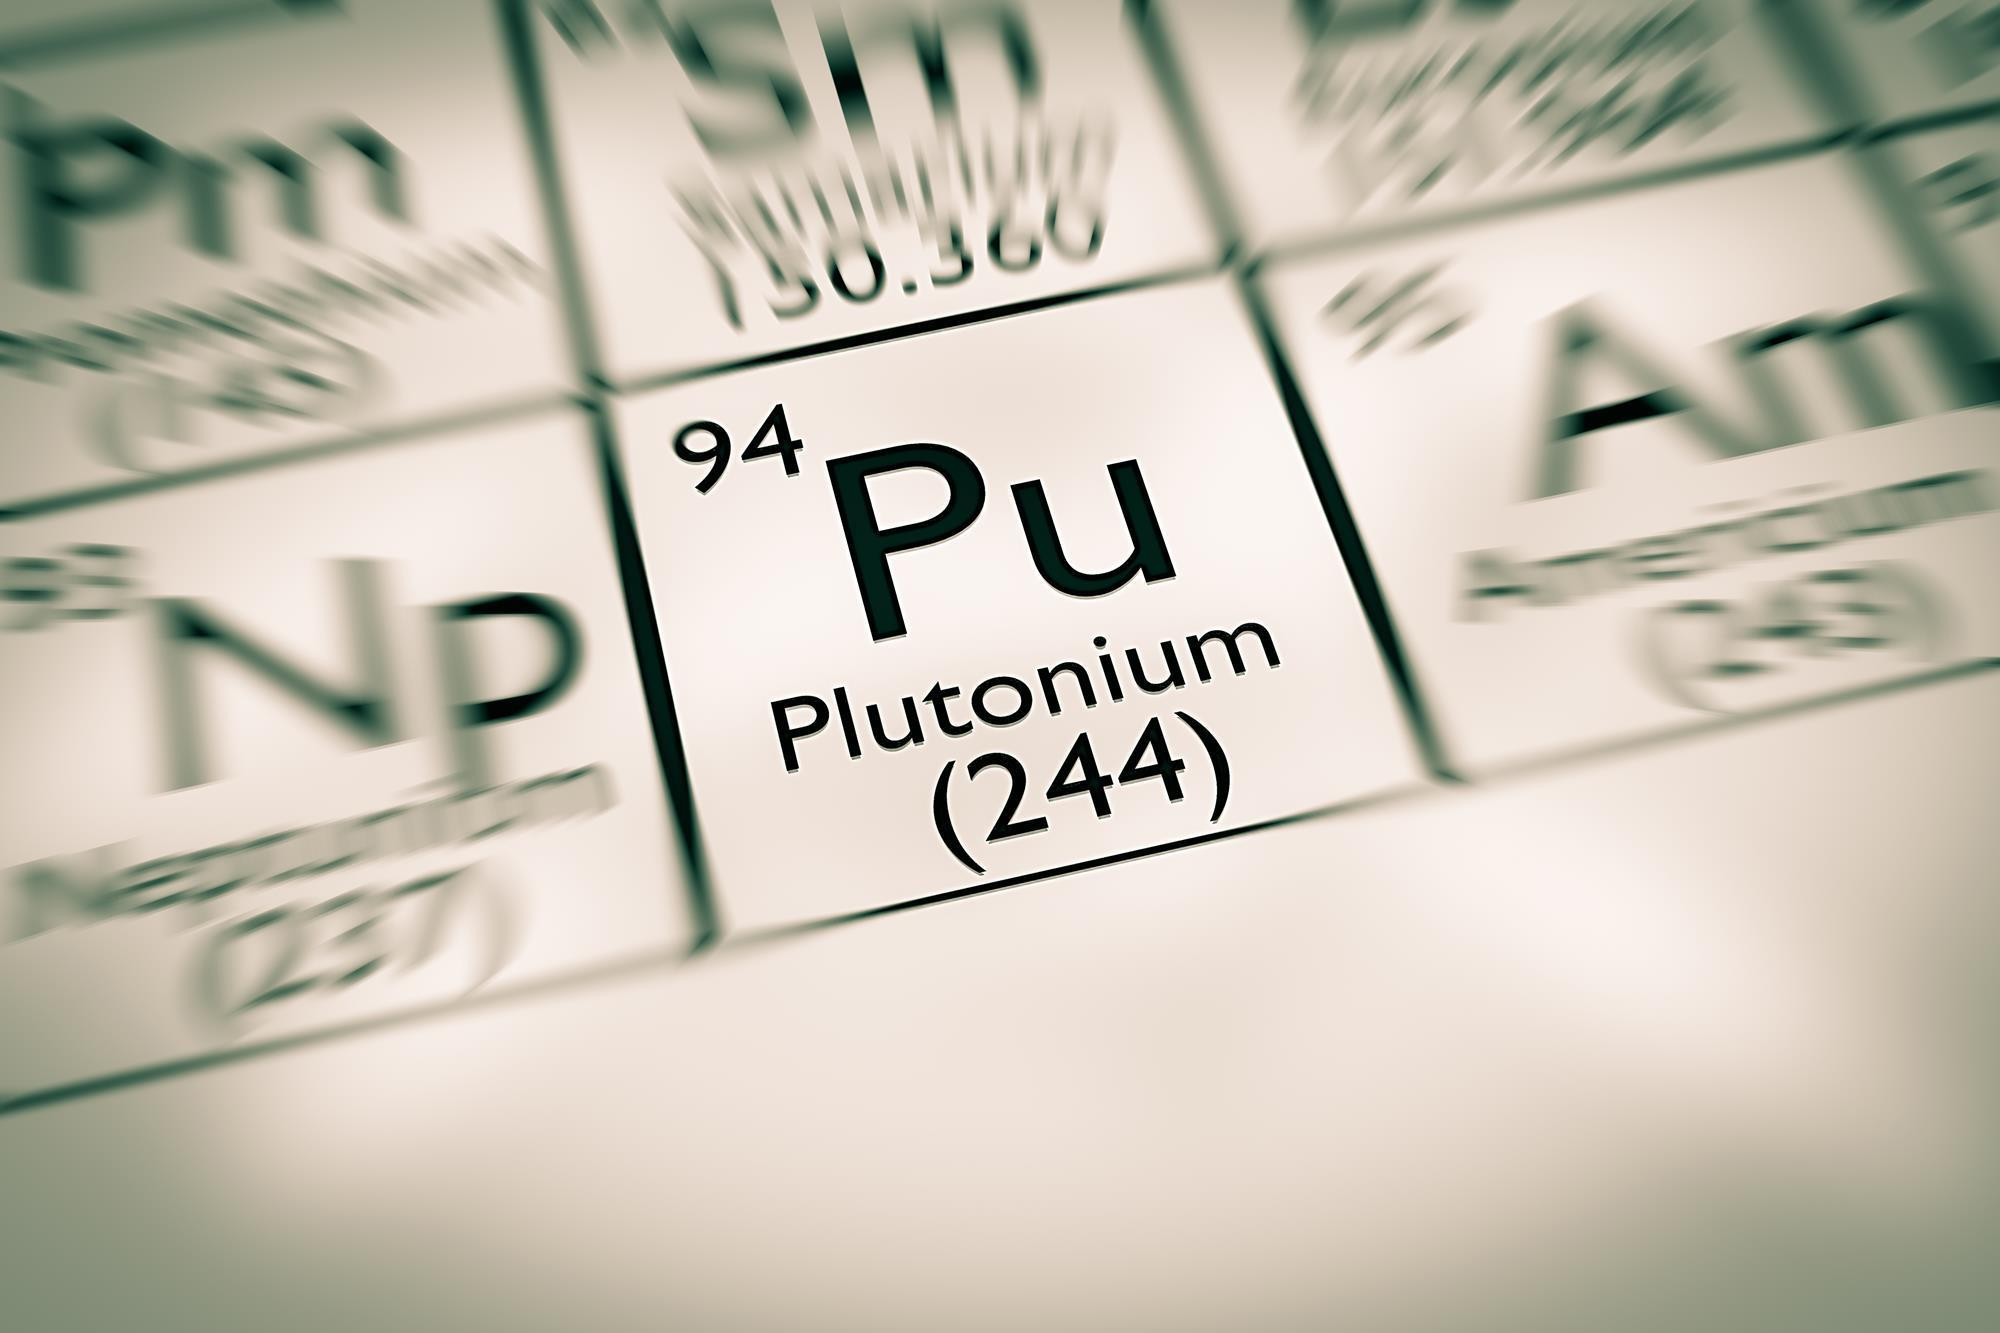 Plutonium Podcast Chemistry World